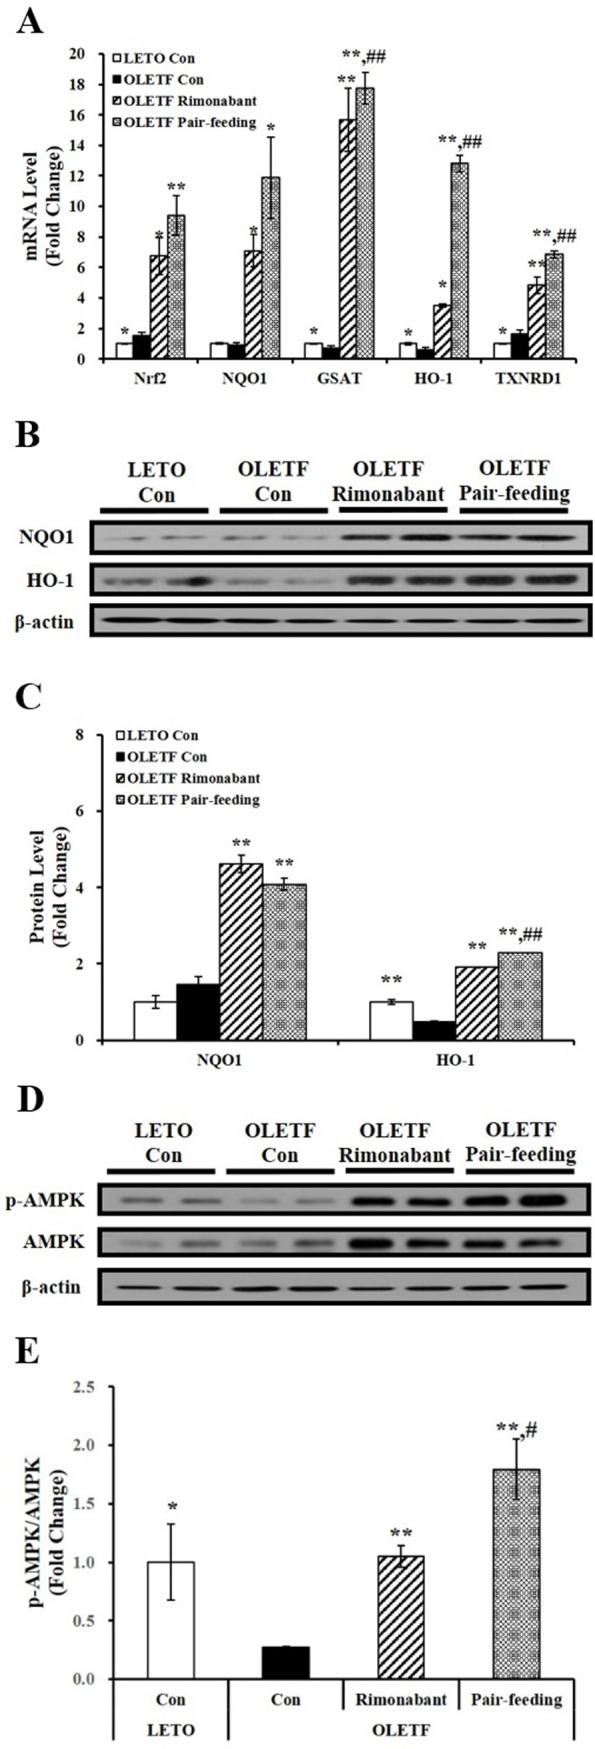 Effects of rimonabant on Nrf2 and its downstream gene expression and AMPK phosphorylation in rat livers. (A) Hepatic Nrf2 and antioxidant-responsive element (ARE)-mediated NQO1, HO-1, GSTA, and TRNRD1 gene expression were determined by RT-PCR, normalized for all samples to ribosomal RNA (18S) level, and expressed as fold change compared to LETO control rats (LETO Con). Representative western blots for NQO1, HO-1, and β-actin (B) and p-AMPK, AMPK, and β-actin (D). The density of signal was quantified and normalized by β-actin (C) or AMPK (E). Data are expressed as mean ± SEM (n = 4–5 per group). *P